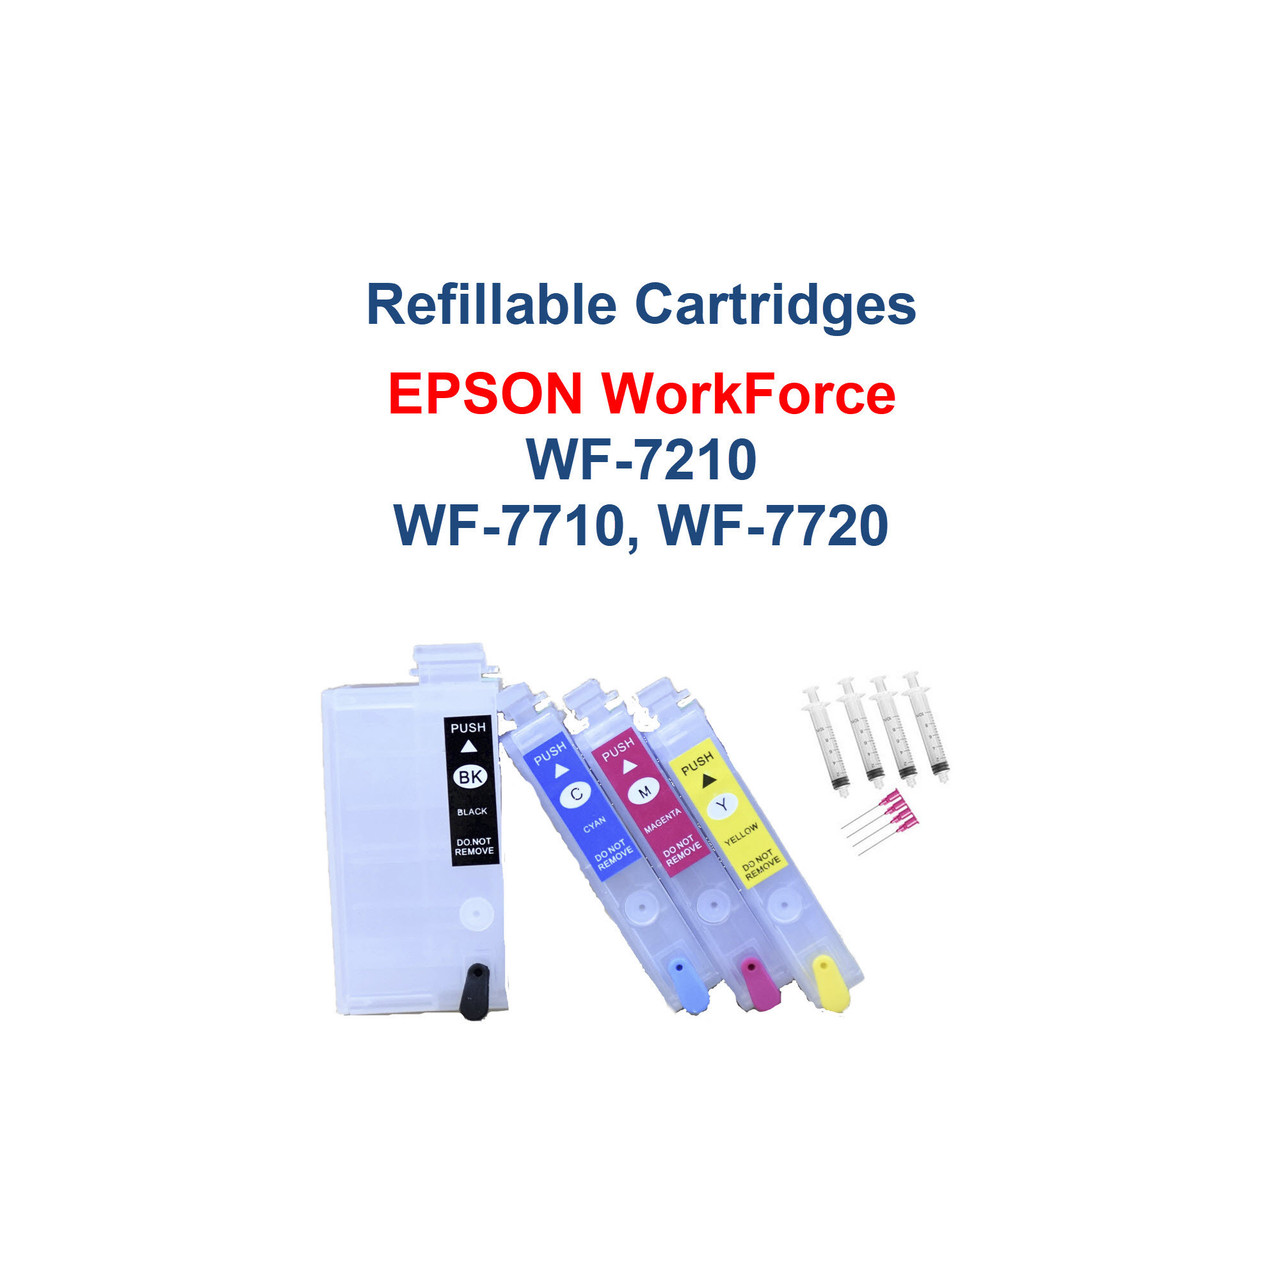 Refillable Ink Cartridges with auto reset chips for Epson WorkForce WF-7210 WF-7710 WF-7720 printers  >>> Los Angeles same day delivery available (Contact us for pricing) <<<  Package includes:  4- Refillable Ink Cartridges with auto reset chips  4- Syringes for filling cartridges  >> Our Refillable Cartridges have a Auto Reset Chip installed on them, no chip Resetter is needed